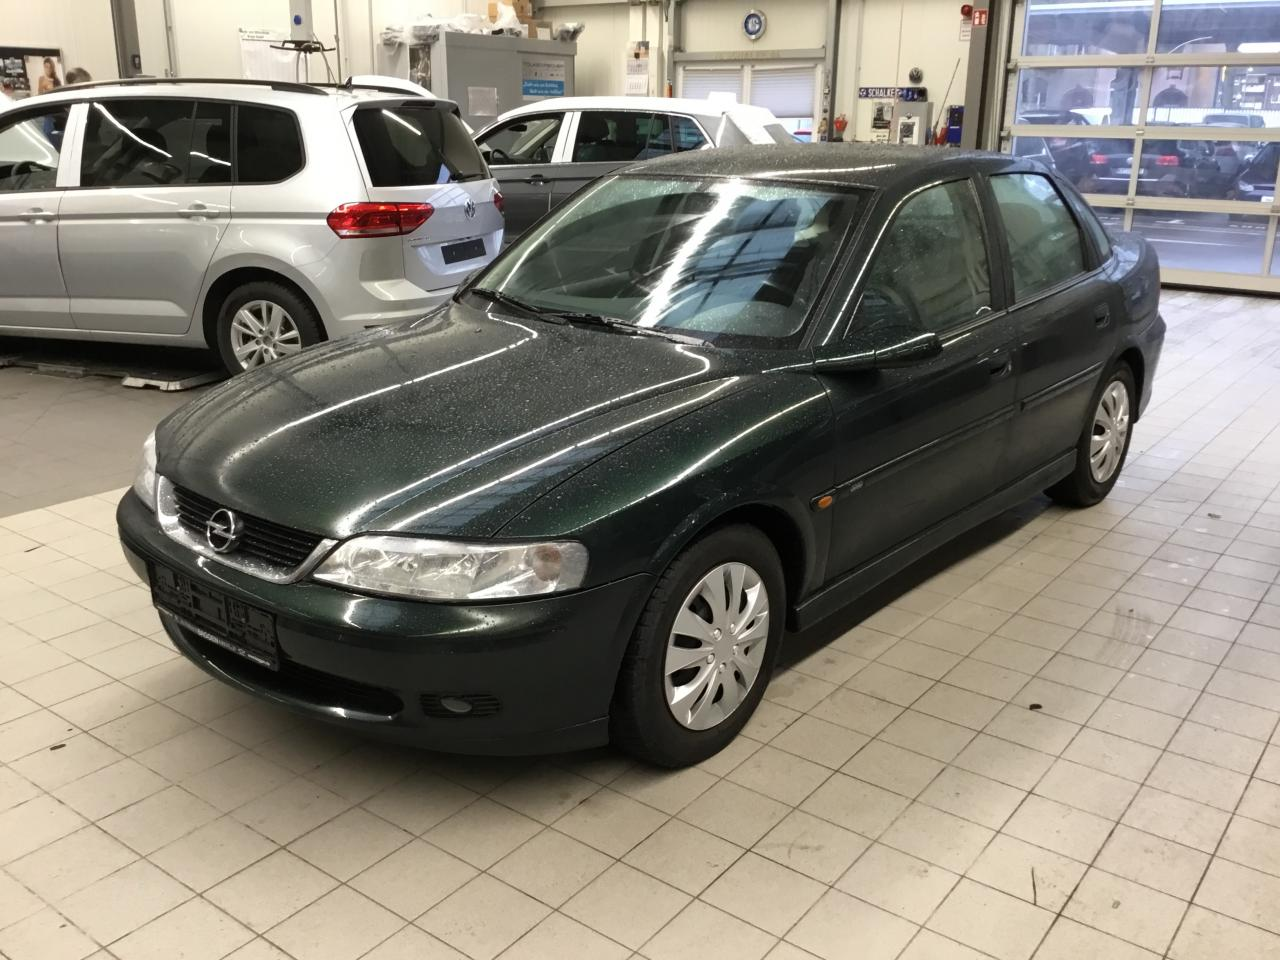 Opel Vectra B Lim. Edition 2000, 41881